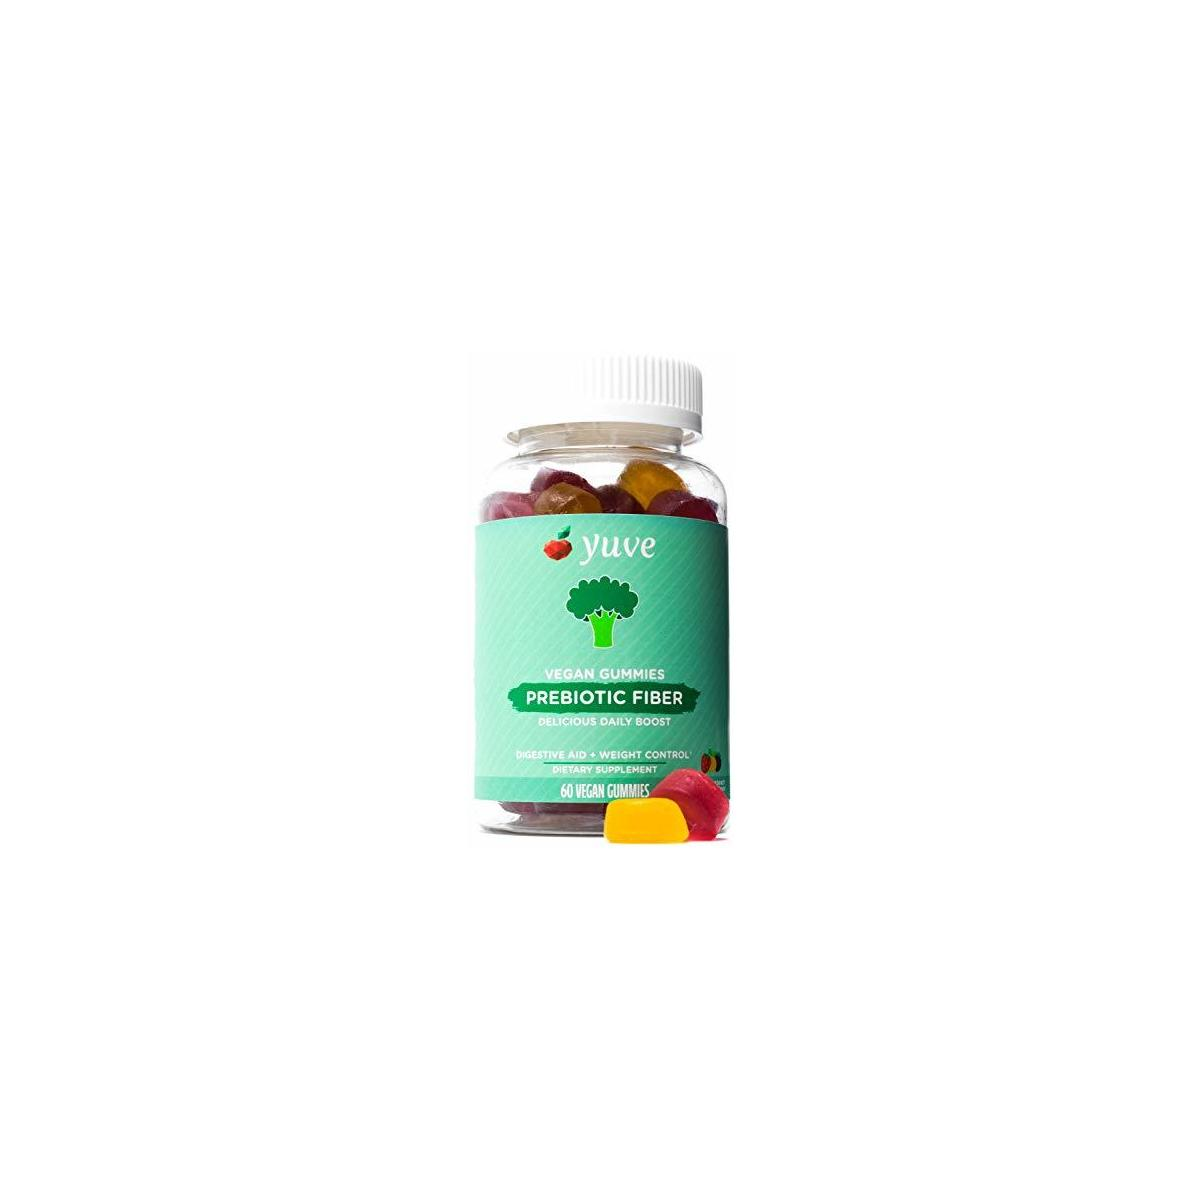 Yuve Vegan Prebiotic Gummies Supplement - 3g All Natural Fiber from Chicory Root & Inulin Chewables for Adults & Kids - Helps with Digestive Health & Constipation - Non-GMO, Gelatin & Gluten Free 60ct